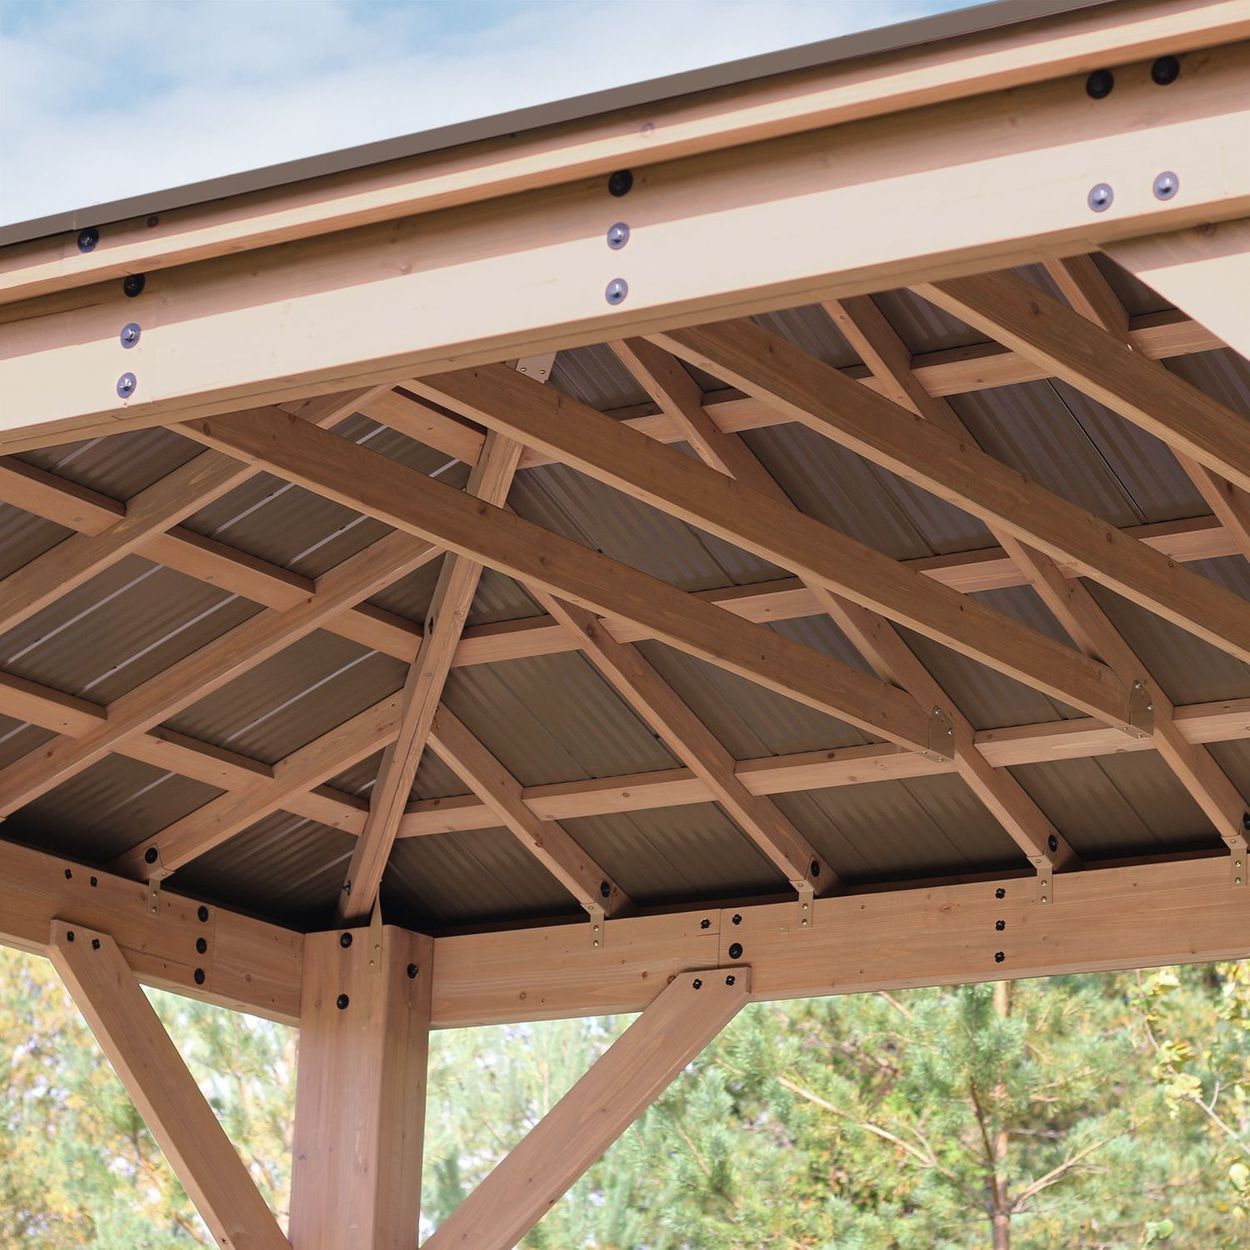 Heart Touching Ideas Of Gazebo Roof Or Cover: 12' X 16' Cedar Gazebo With Aluminum Roof In 2019